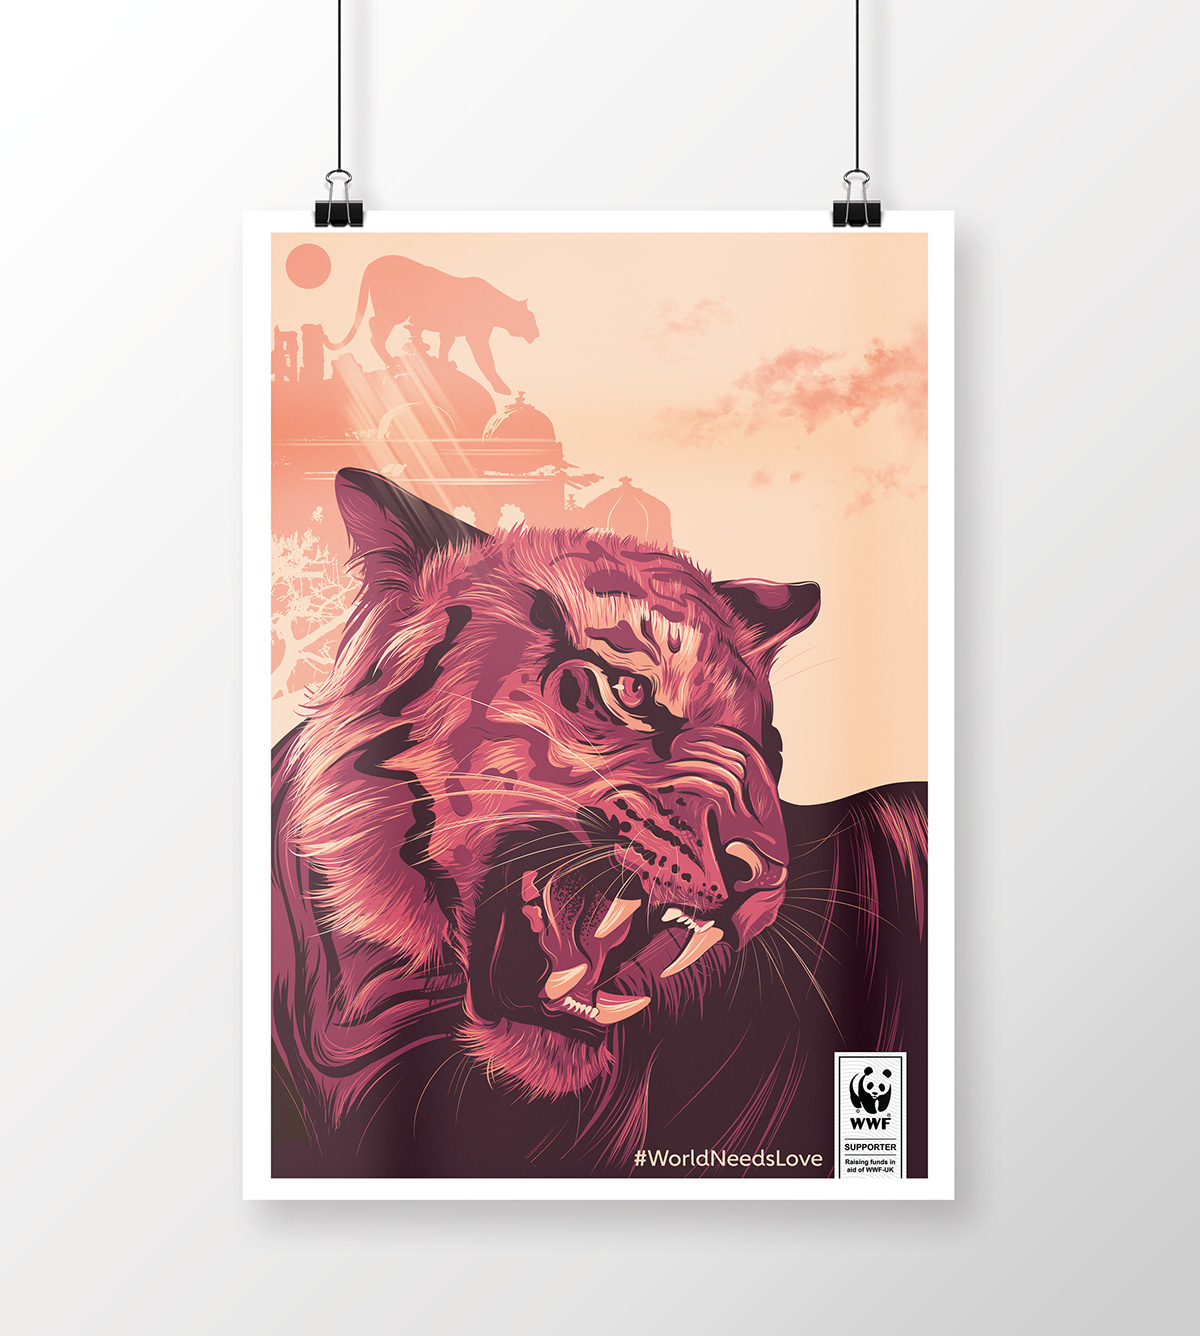 Wwf Poster Campaign On Behance